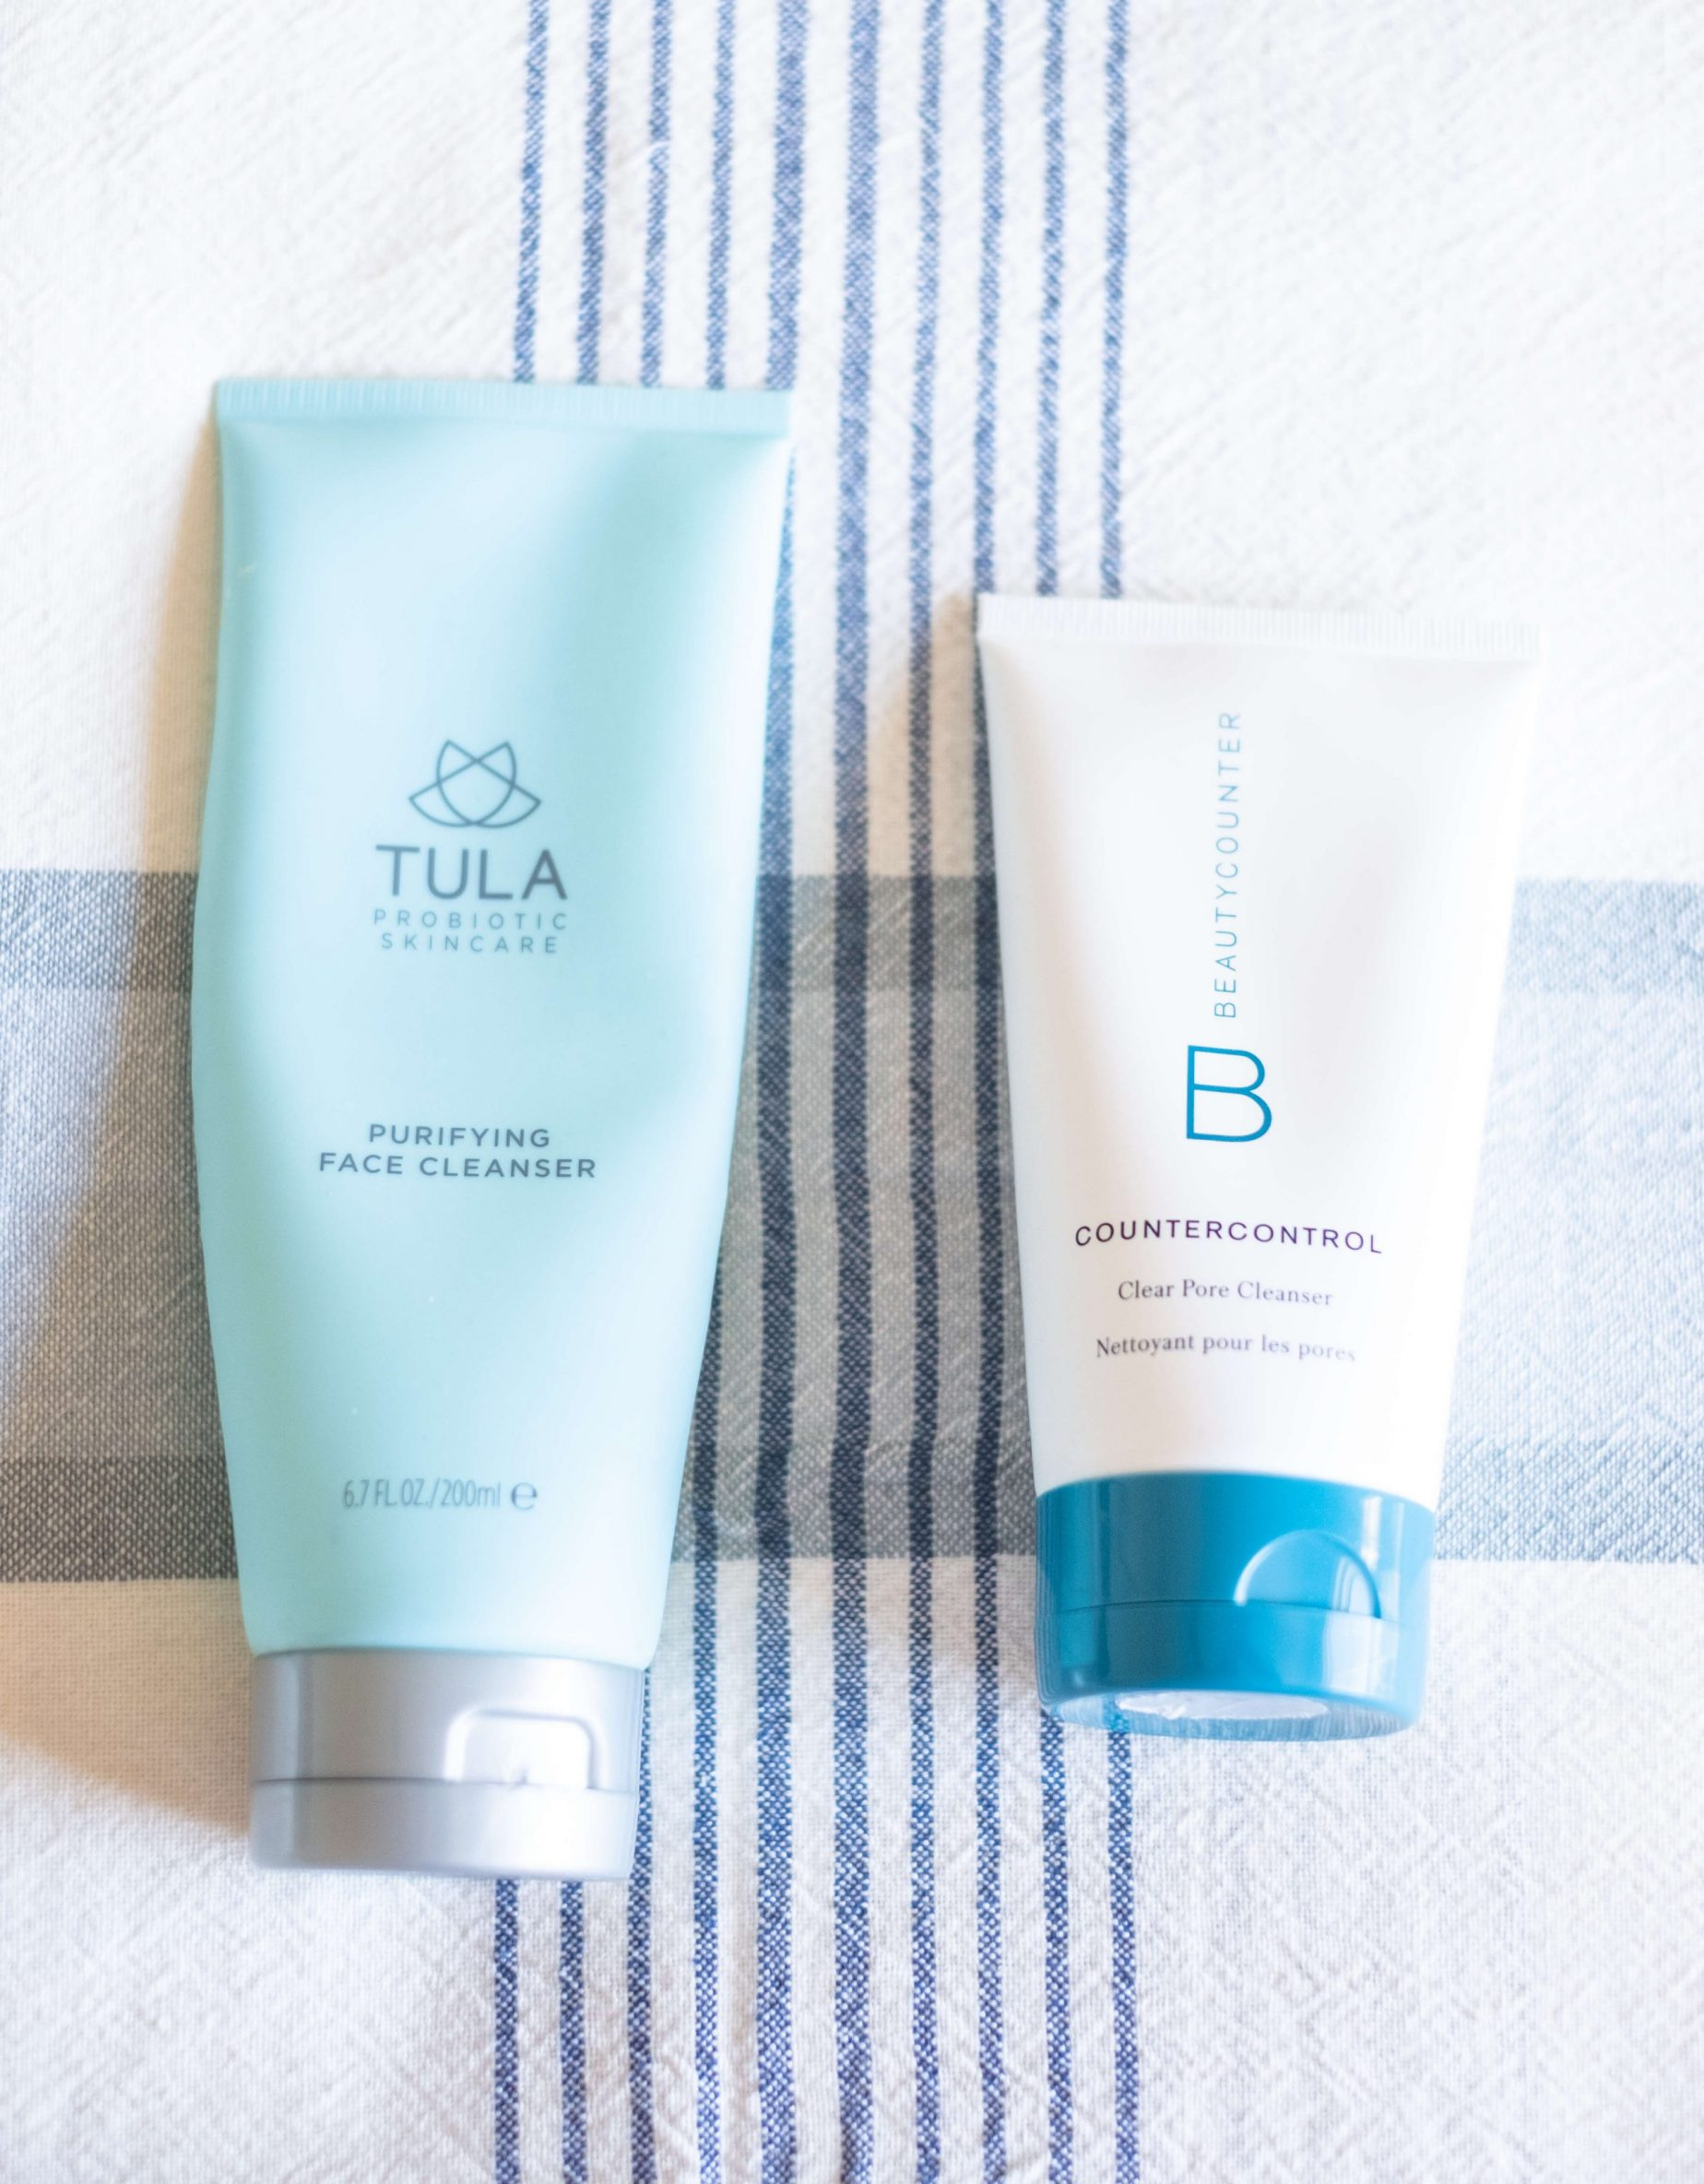 TULA'S PURIFYING CLEANSER VS BEAUTYCOUNTER'S COUNTERCONTROL CLEANSER #whatsavvysaid #tula #beautycounter #acneproneskin #cleanskincare